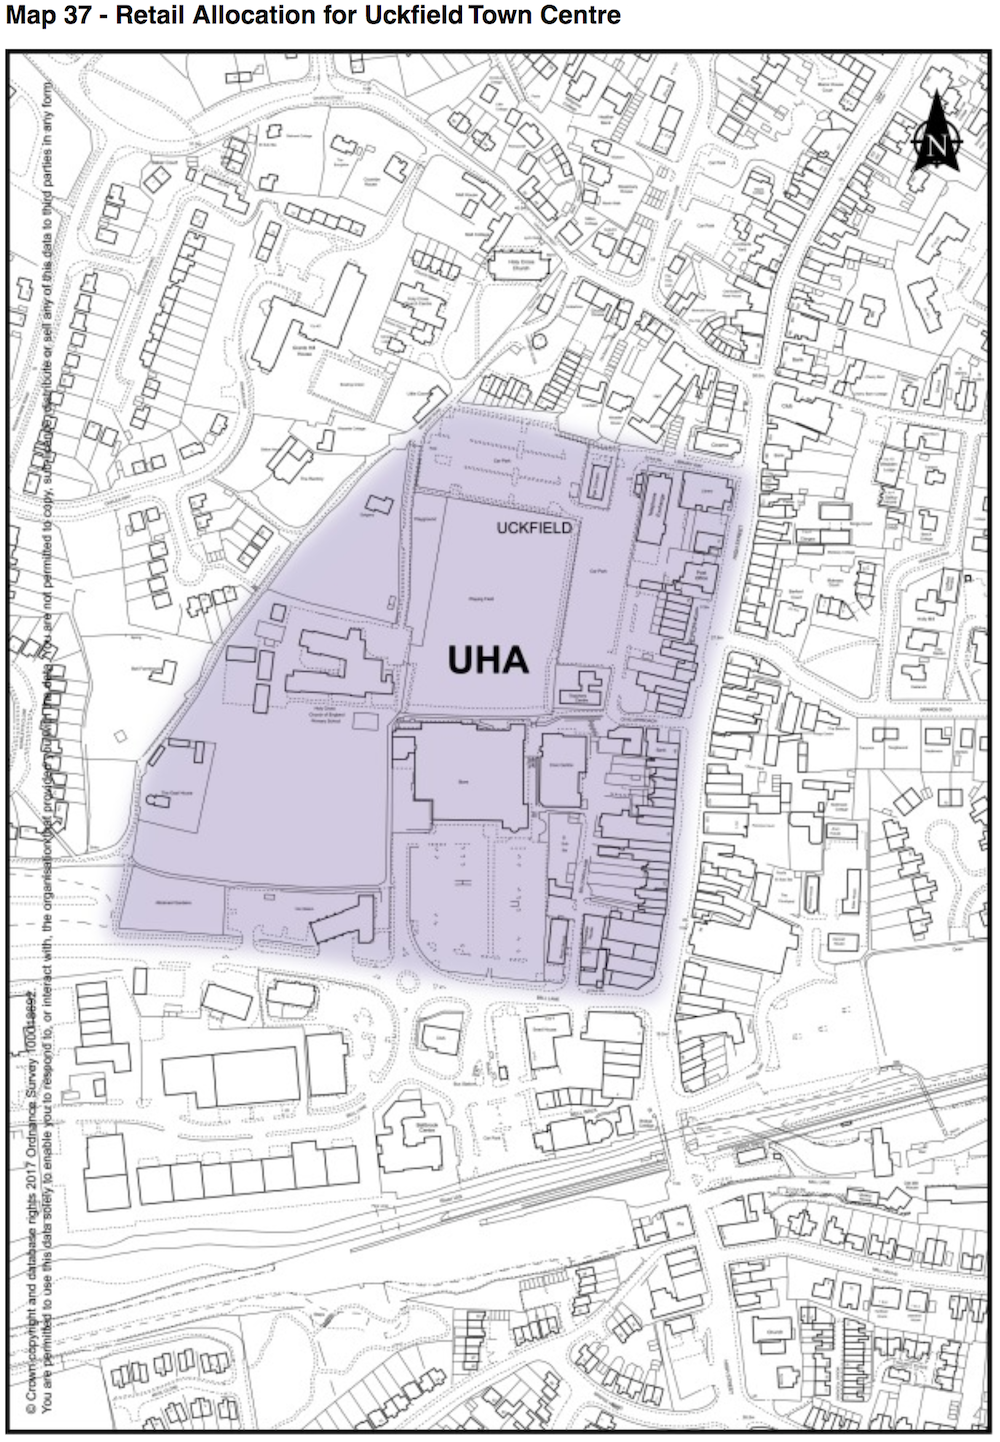 map-retail-allocation-uckfield-town-centre